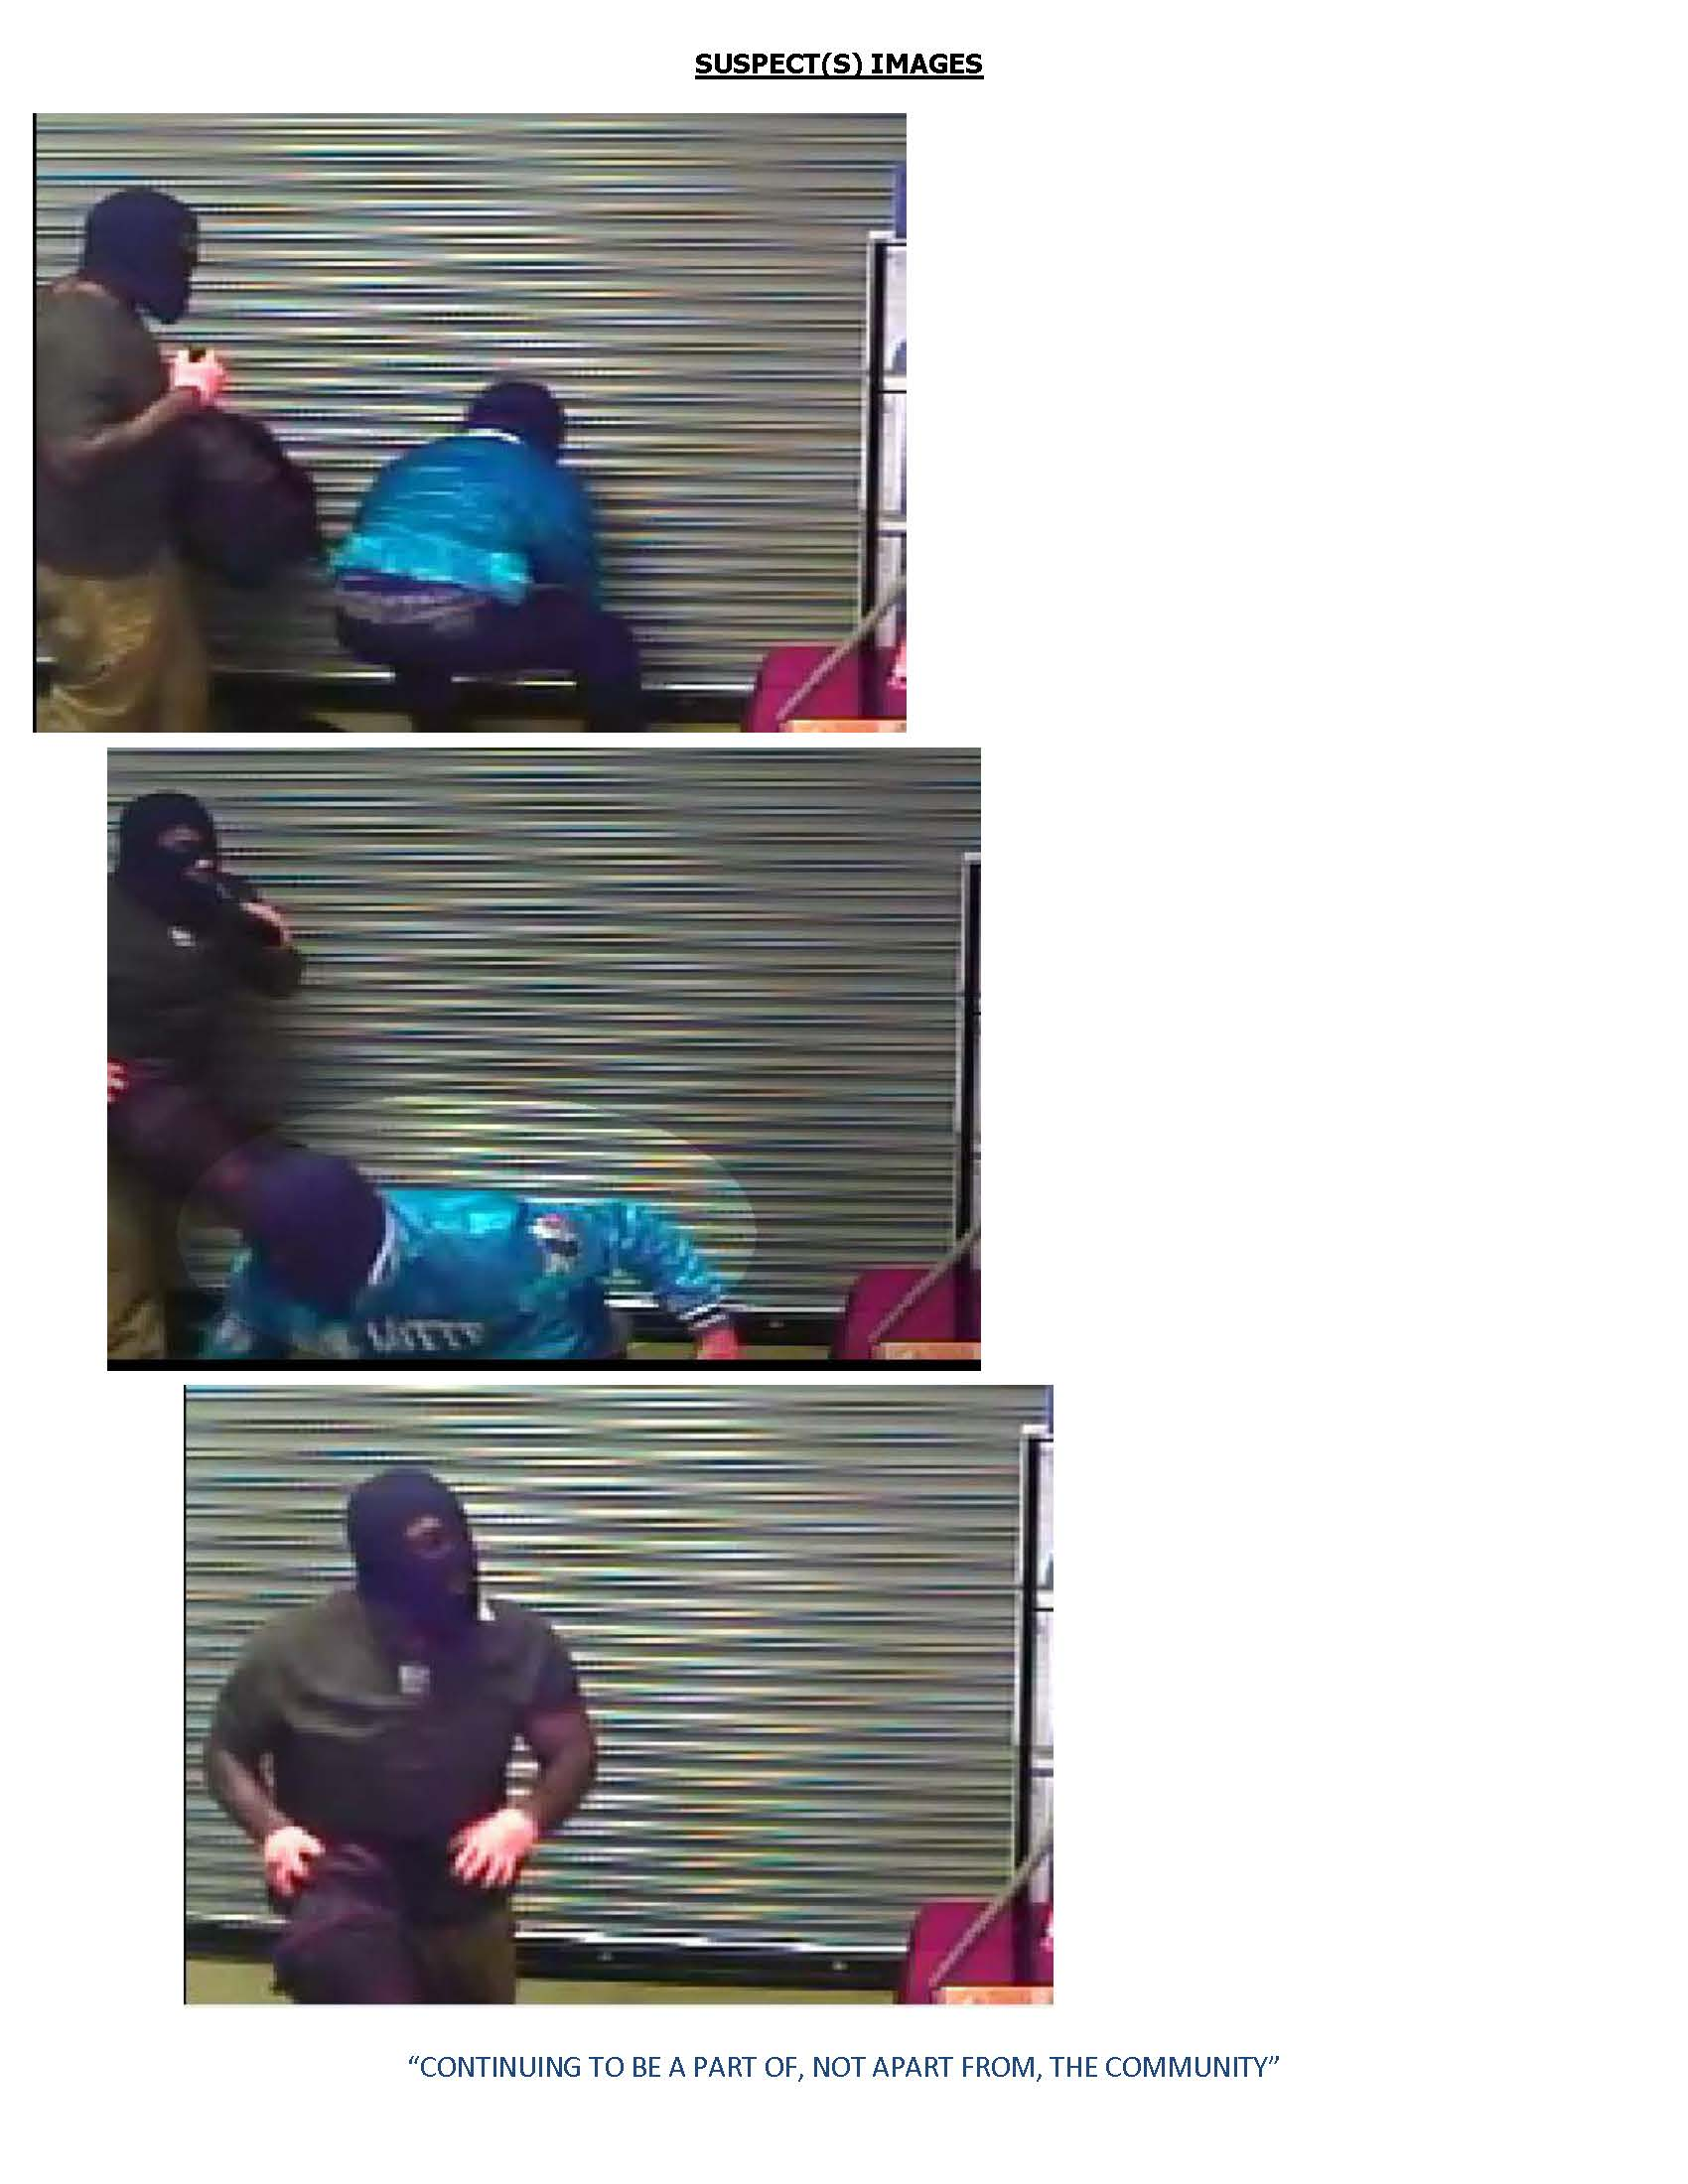 HCSO - Investigators Seek to Identify Burglary Suspects- August 2017_Page_2